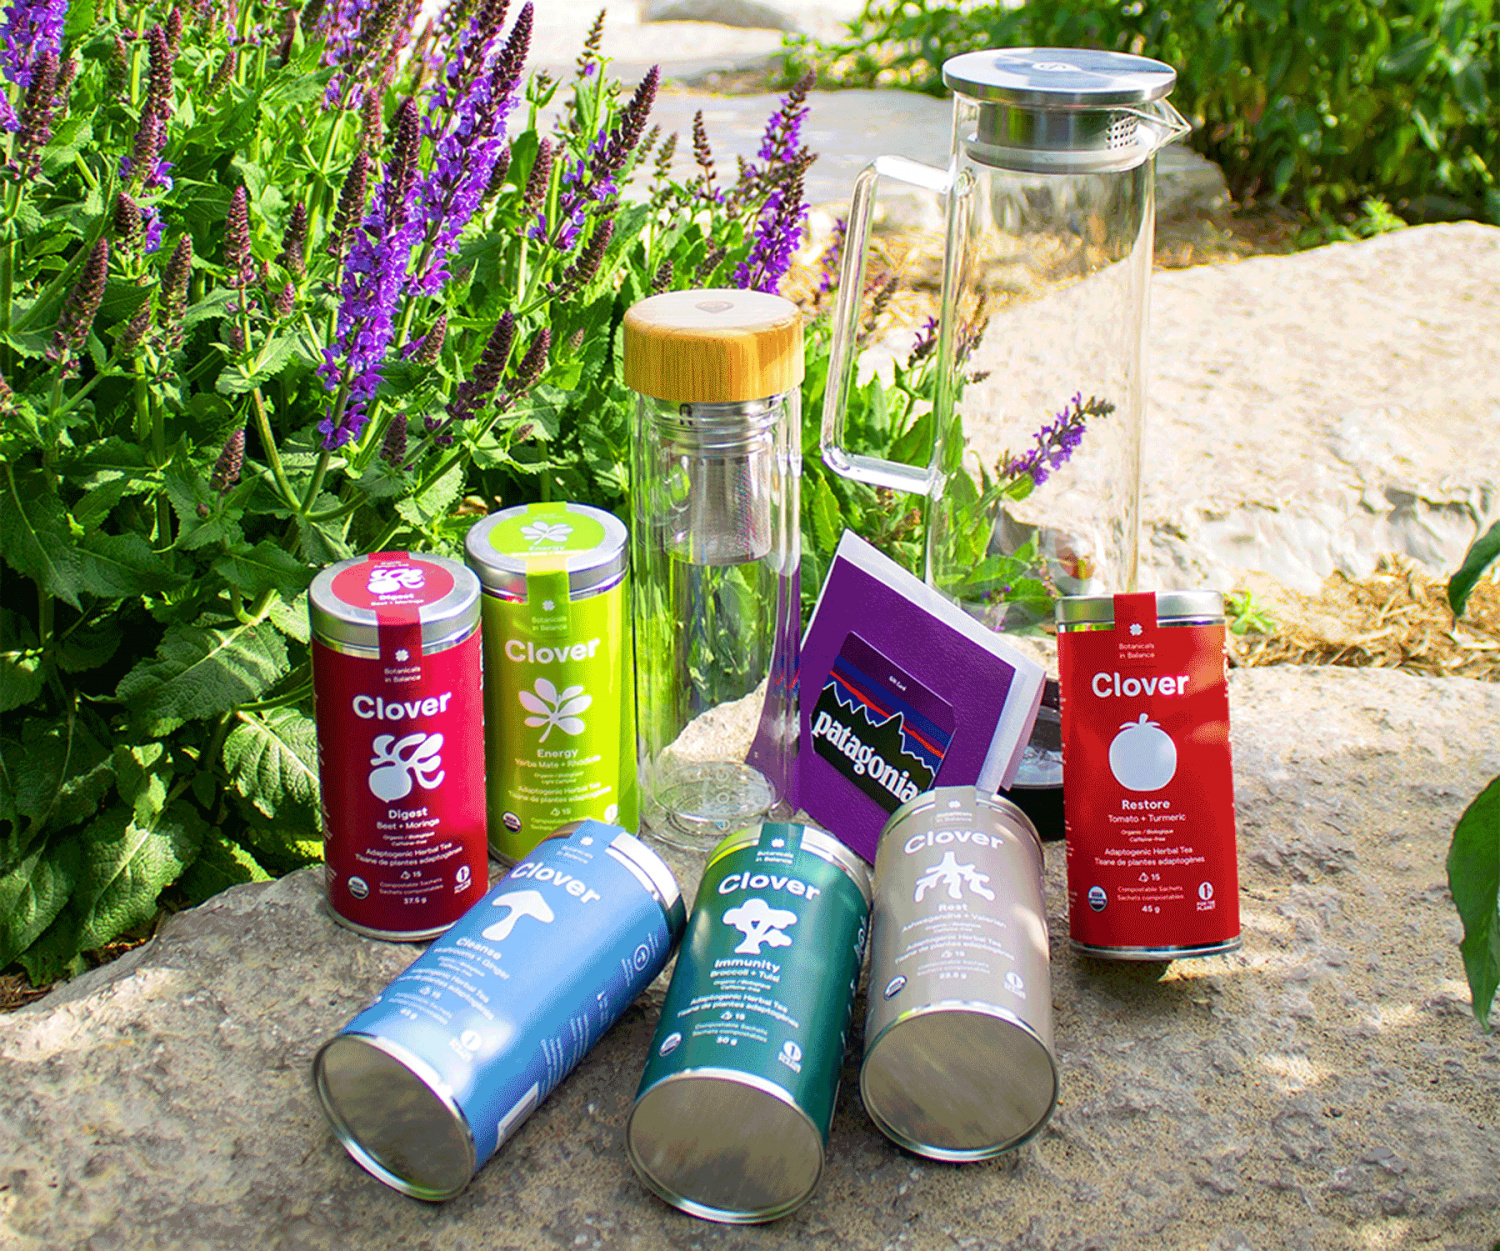 Win a super tea and healthy lifestyle prize pack | Clover Botanicals adaptogen tea, Grosche water bottles and a Patagonia gift card